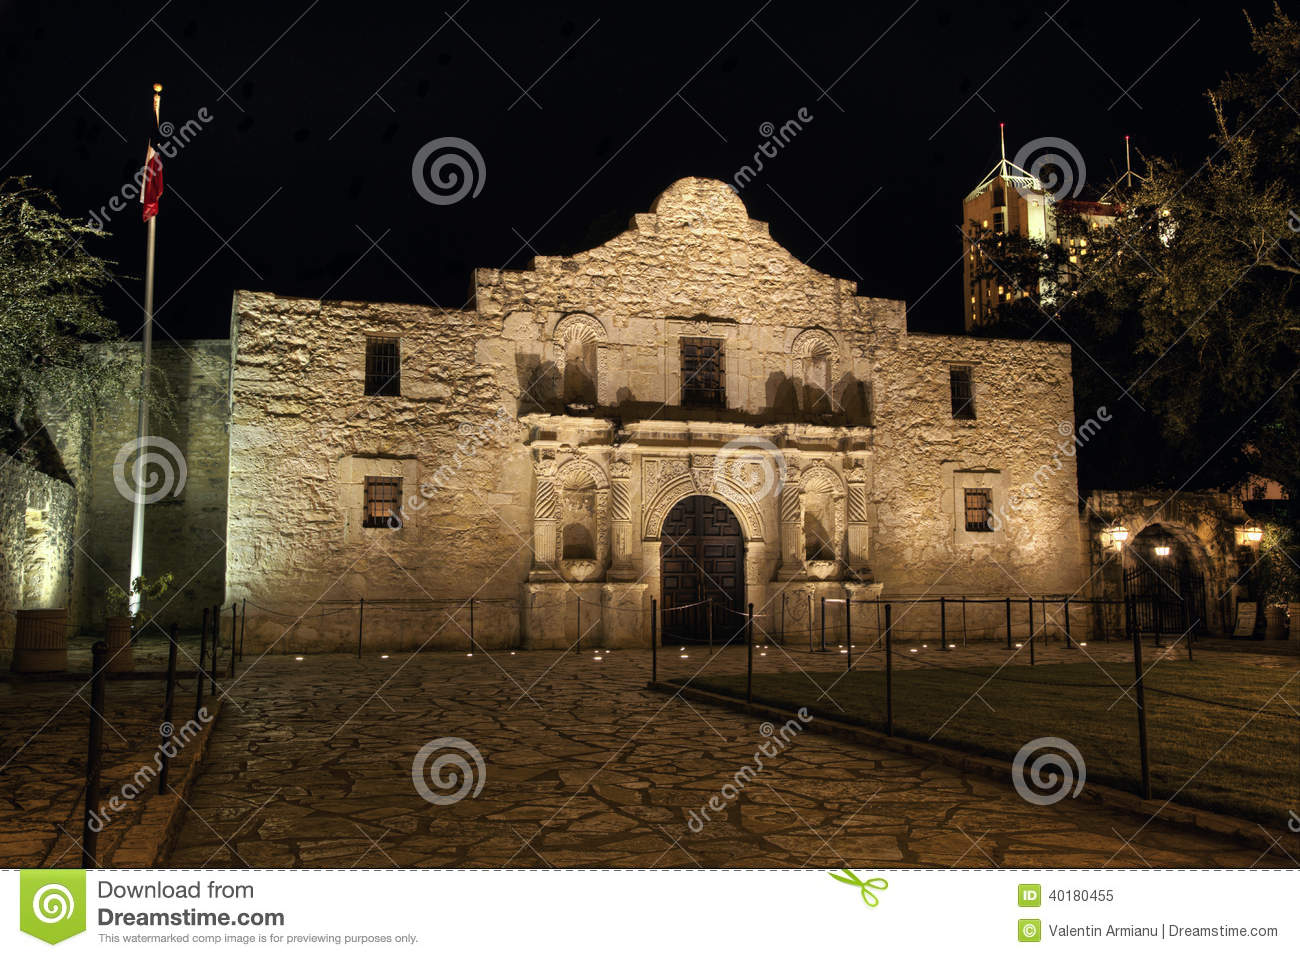 an overview of the original mission of americas landmark the alamo